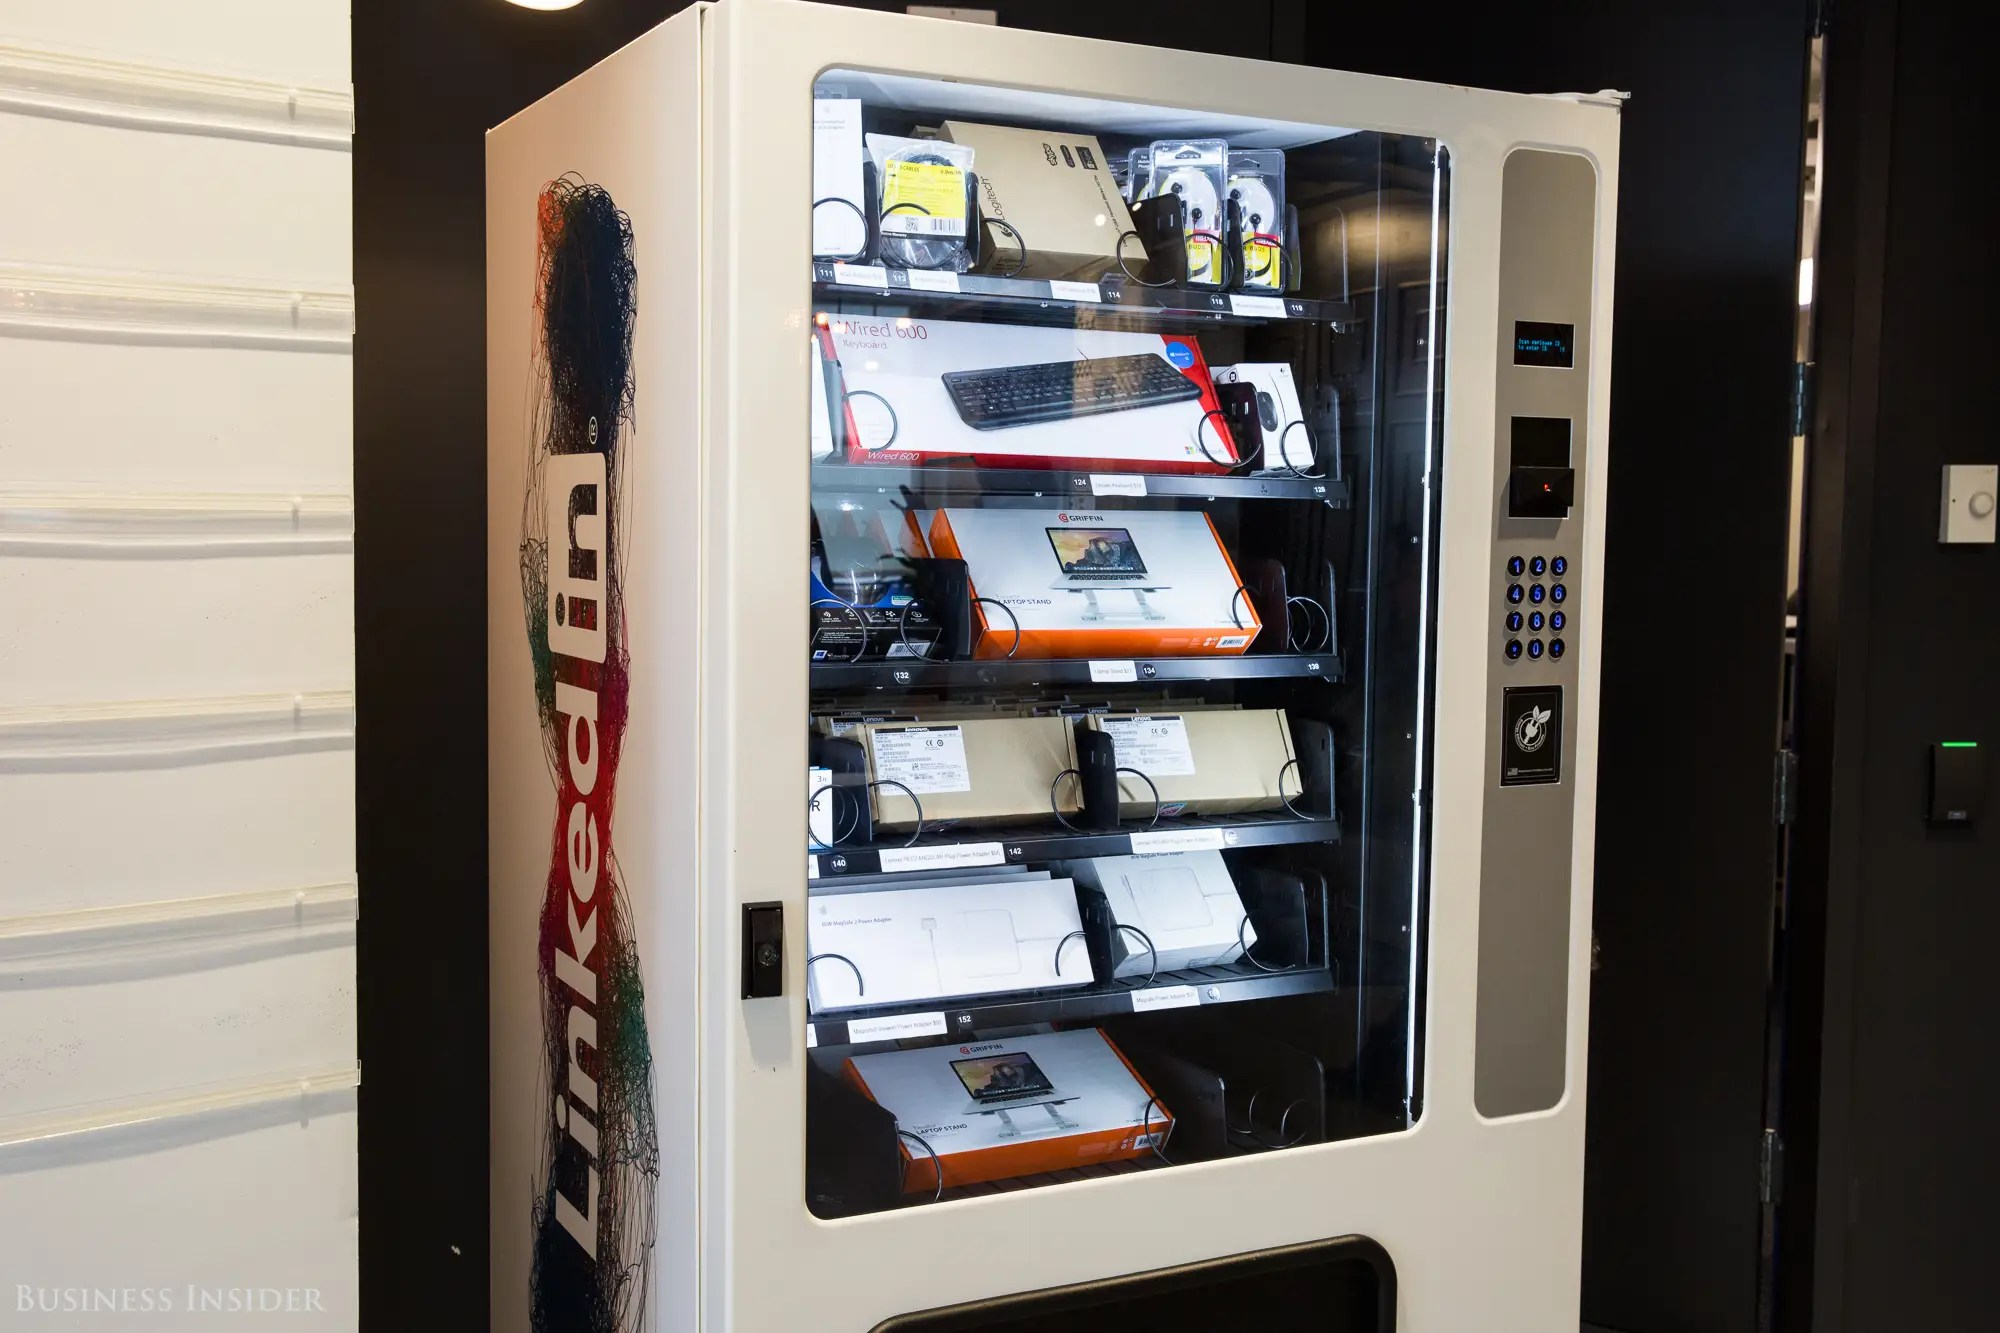 Walking out of the theater, we passed by a high-tech vending machine. Employees can access all sorts of work-related gadgets — like keyboards and chargers — with their LinkedIn employee badge.